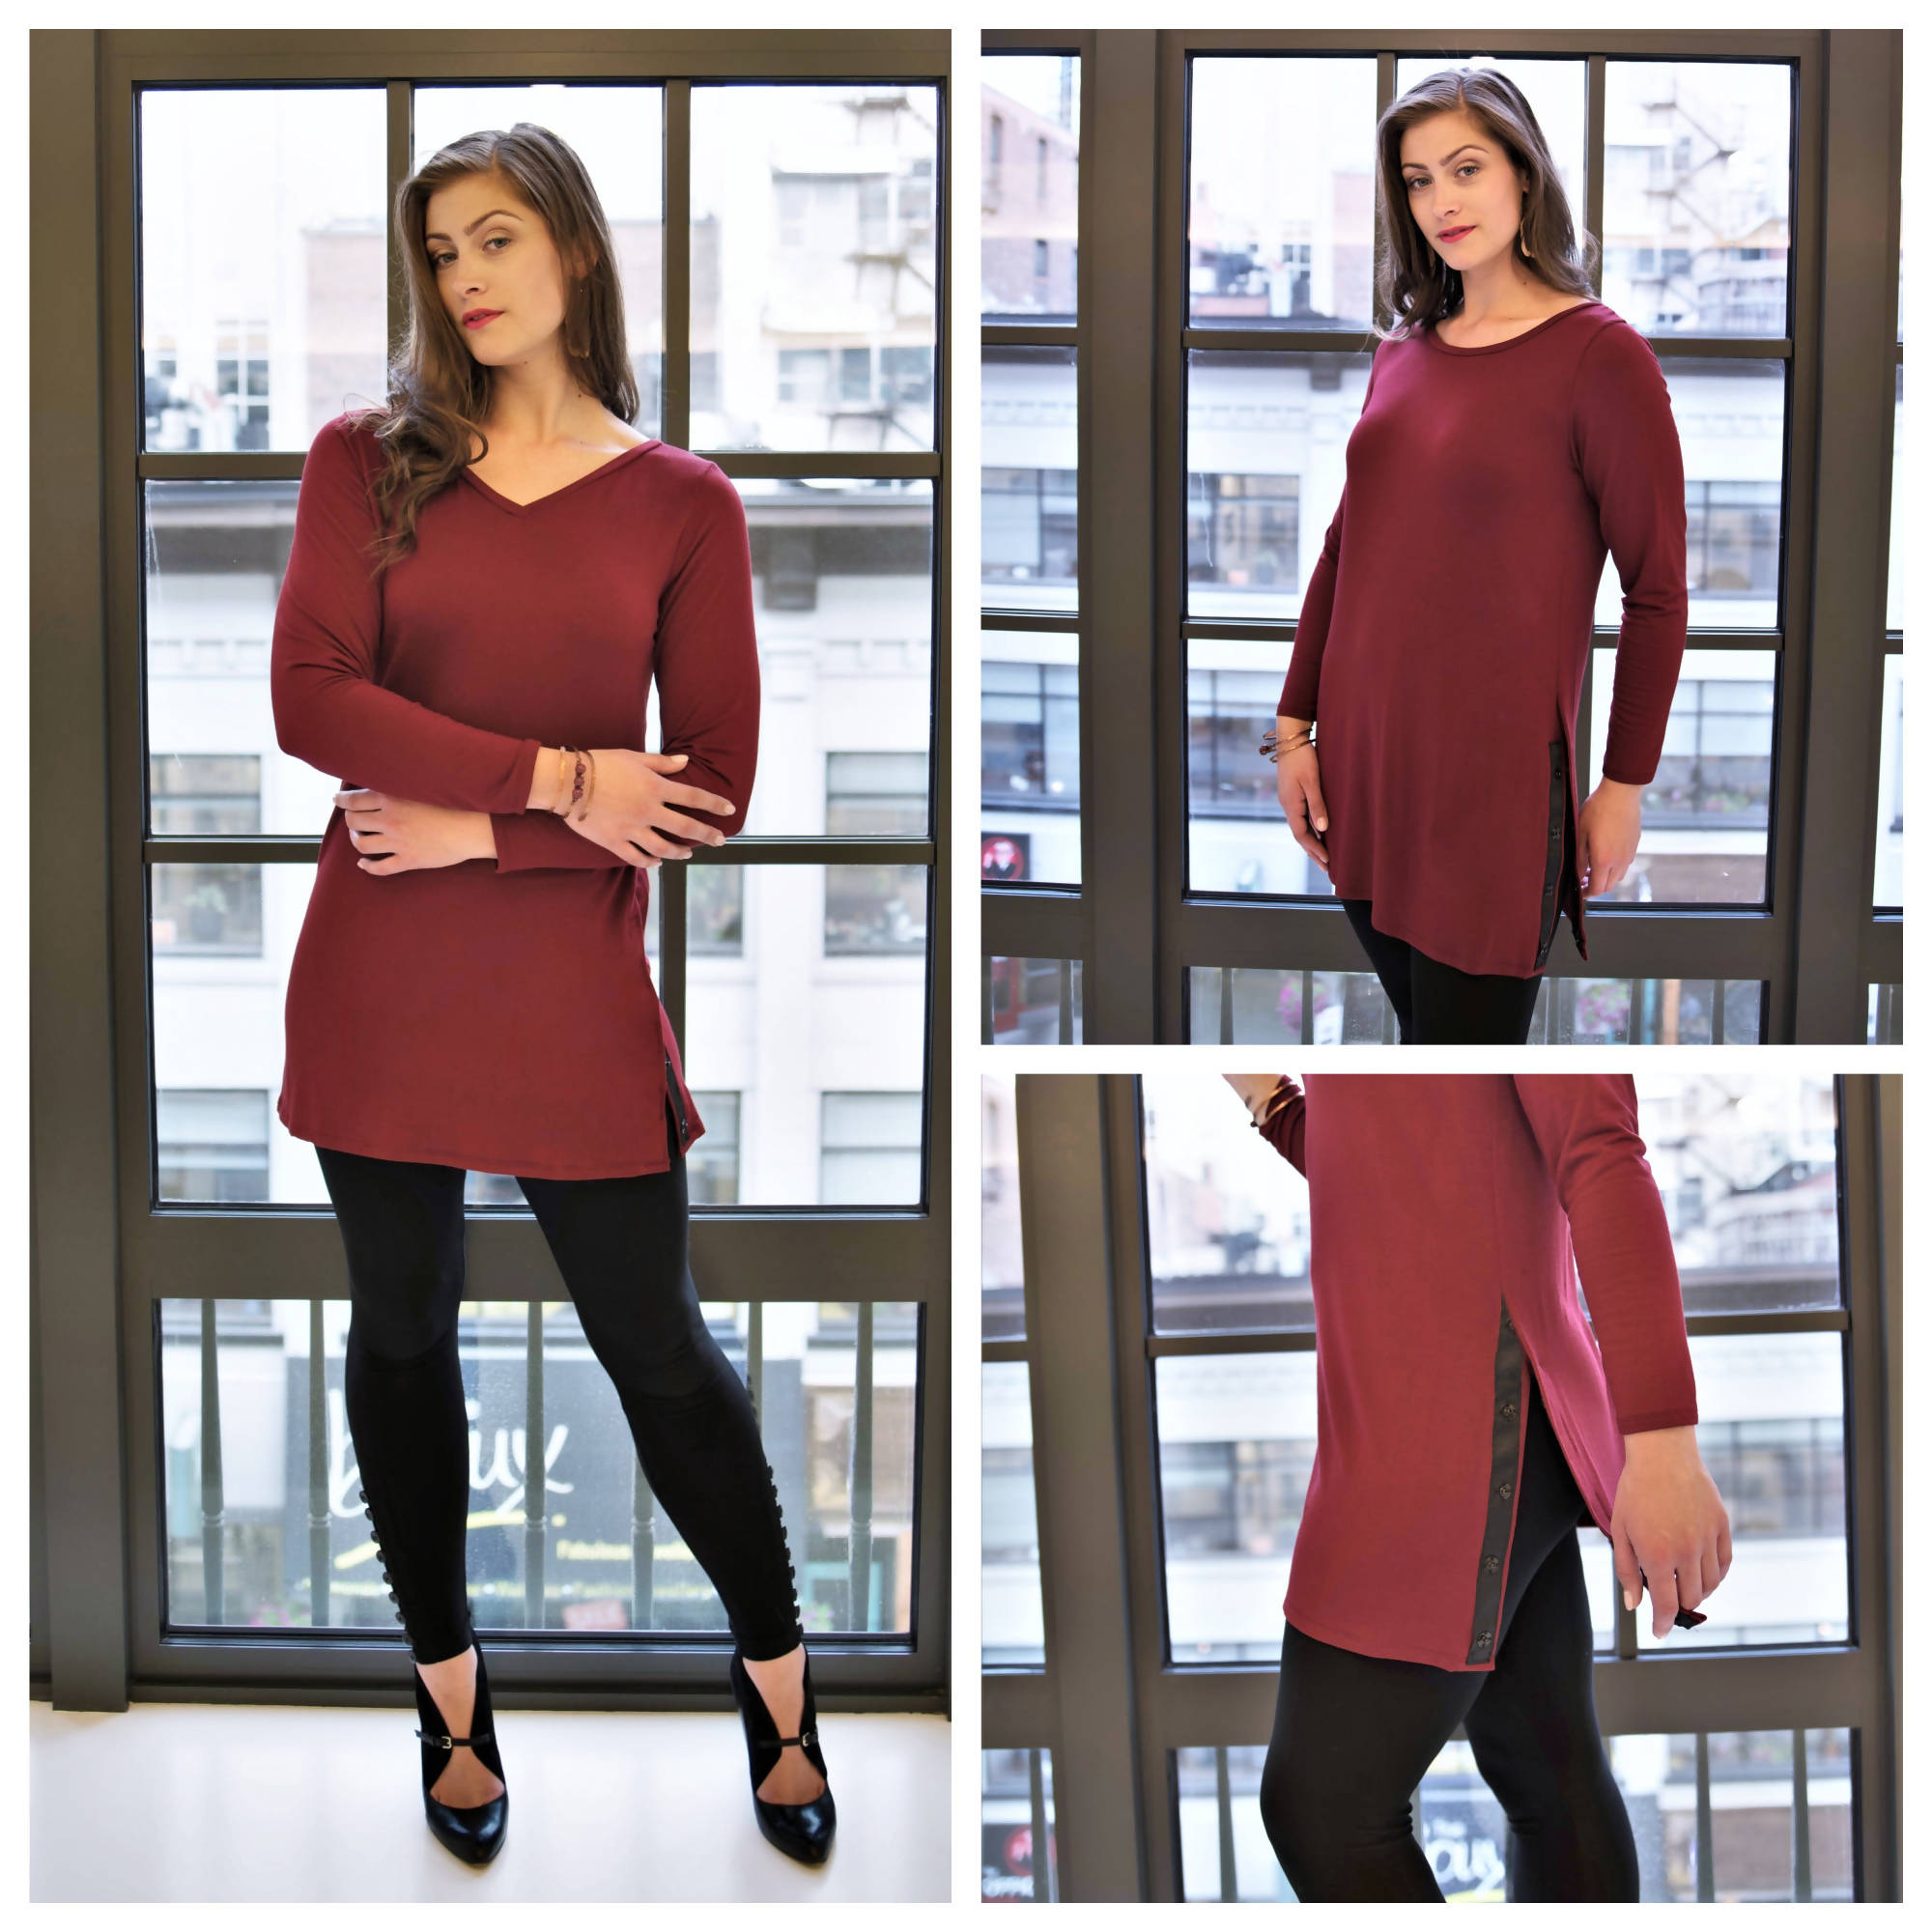 Womens Clothing - Long Sleeve Top - Tunics for Women - Tunic Tops - Reversible Sycamore Snap Modal Tunic